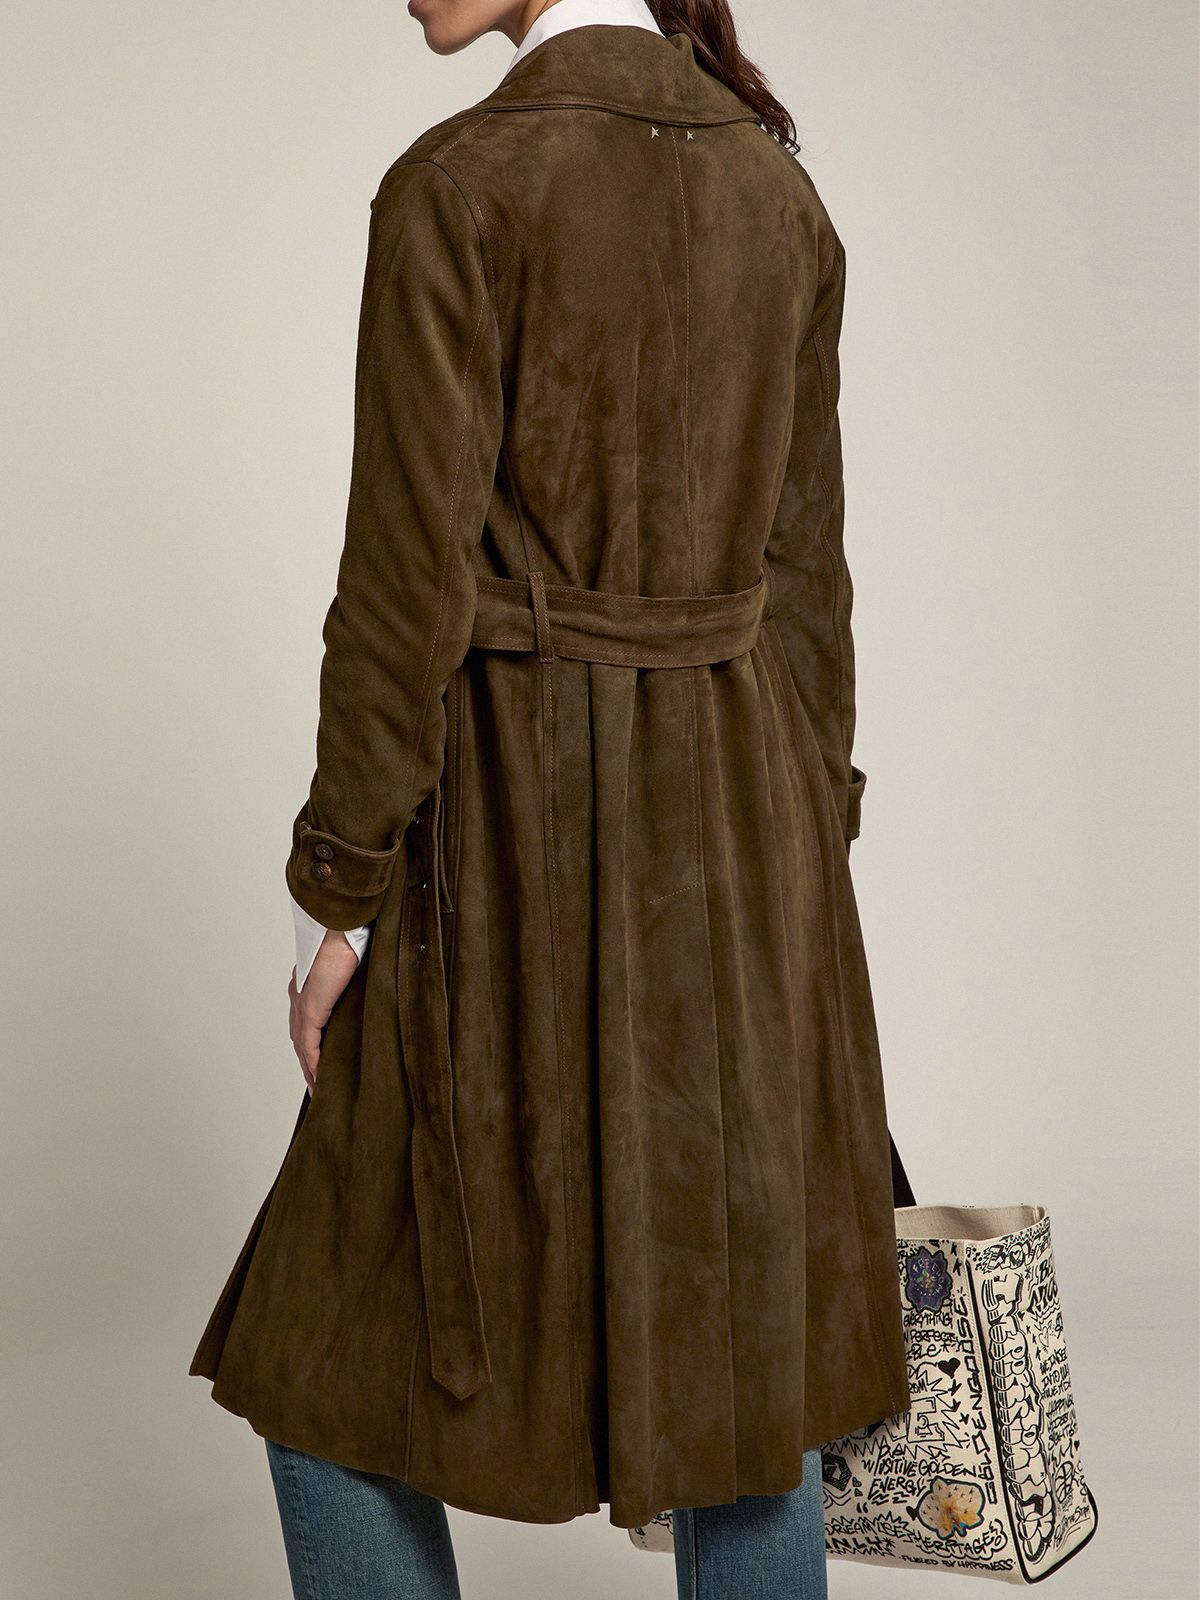 Golden Goose - Abigail trench coat in military green suede leather in